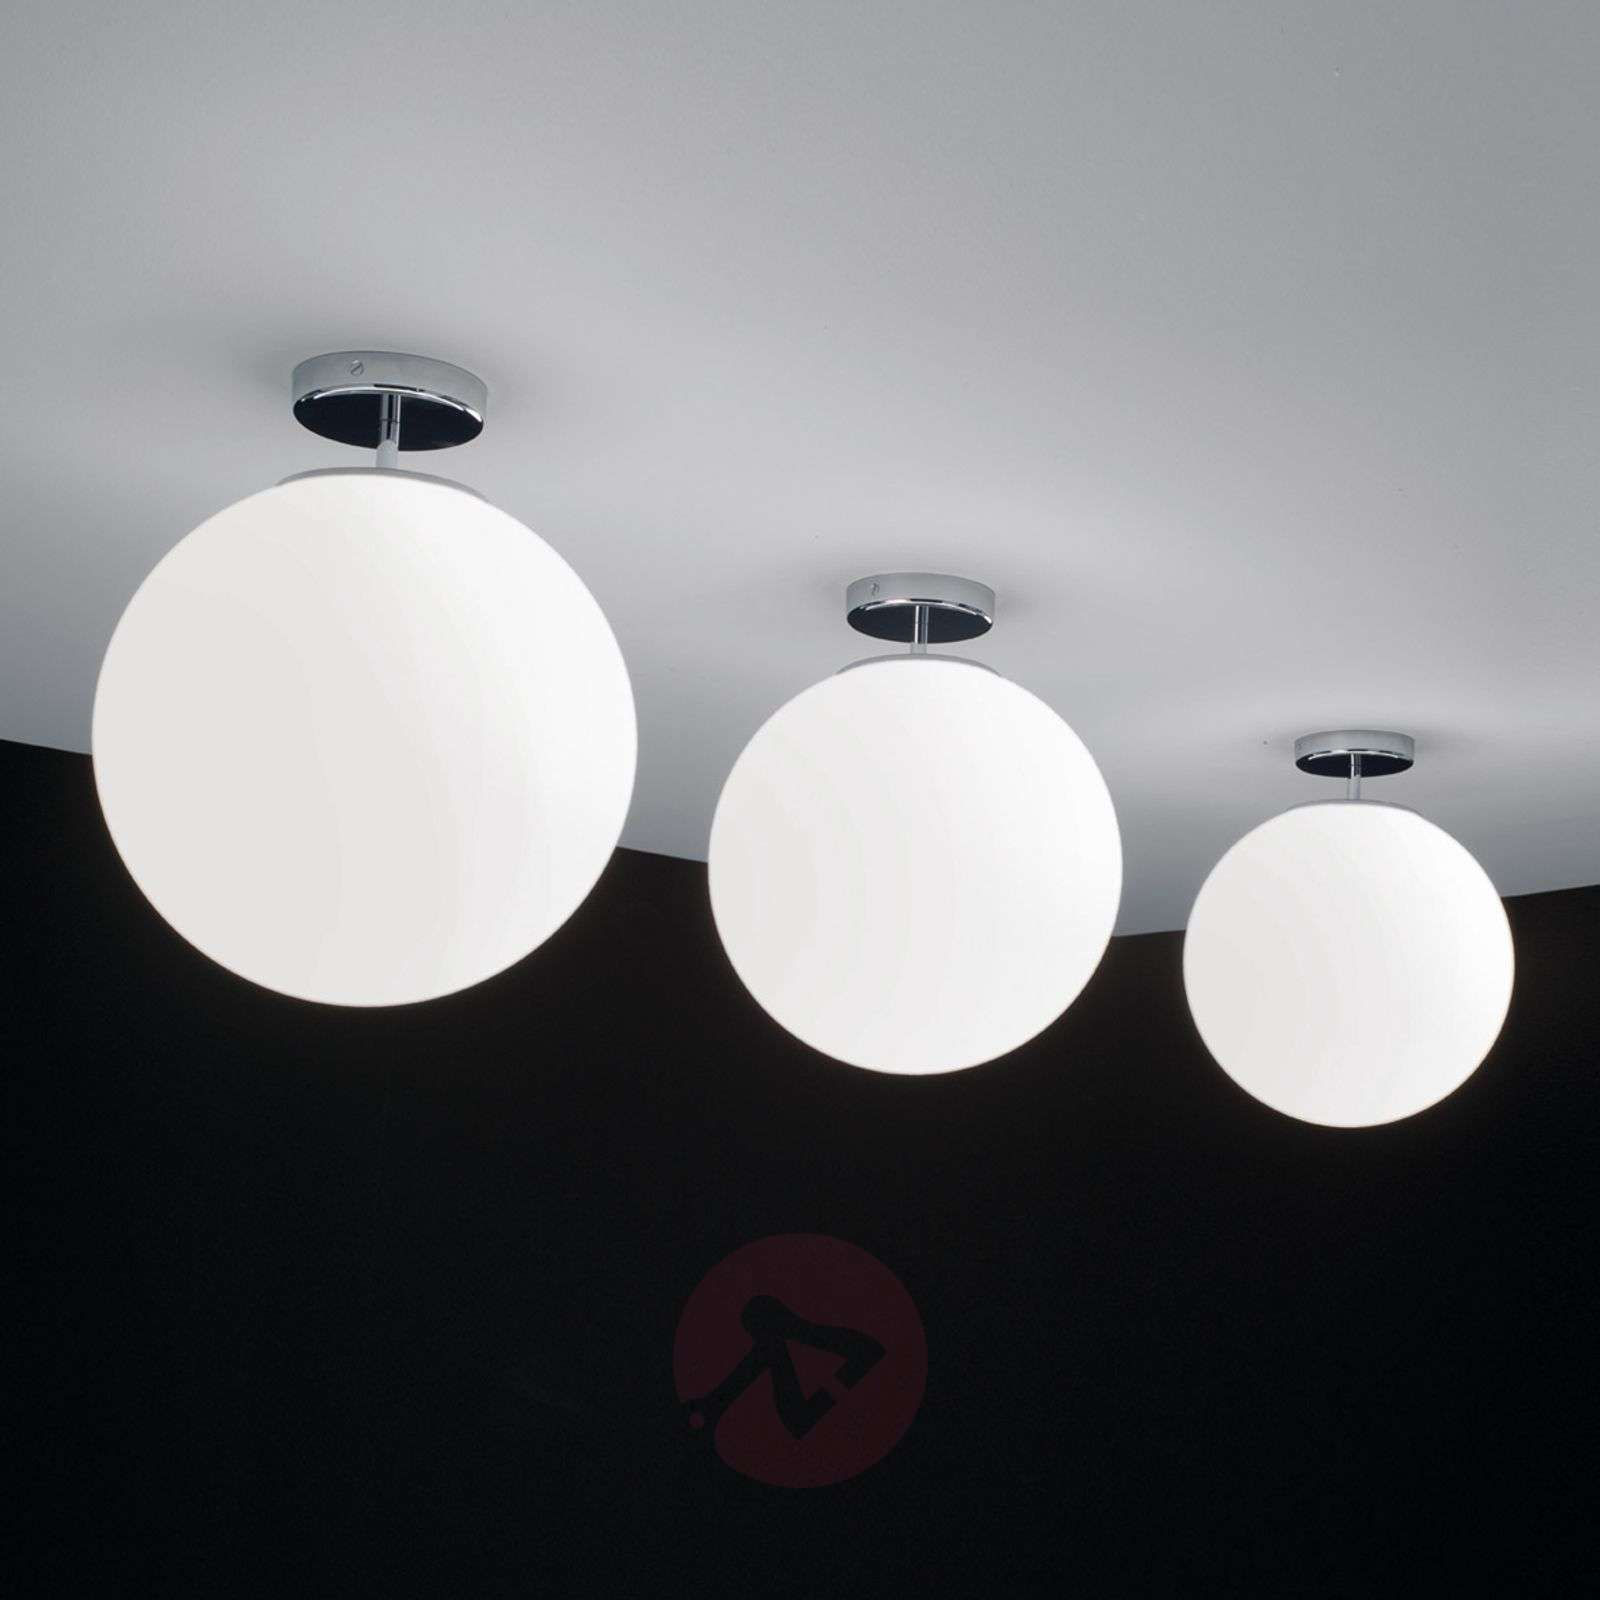 Glass ceiling light Sferis-1053049X-01